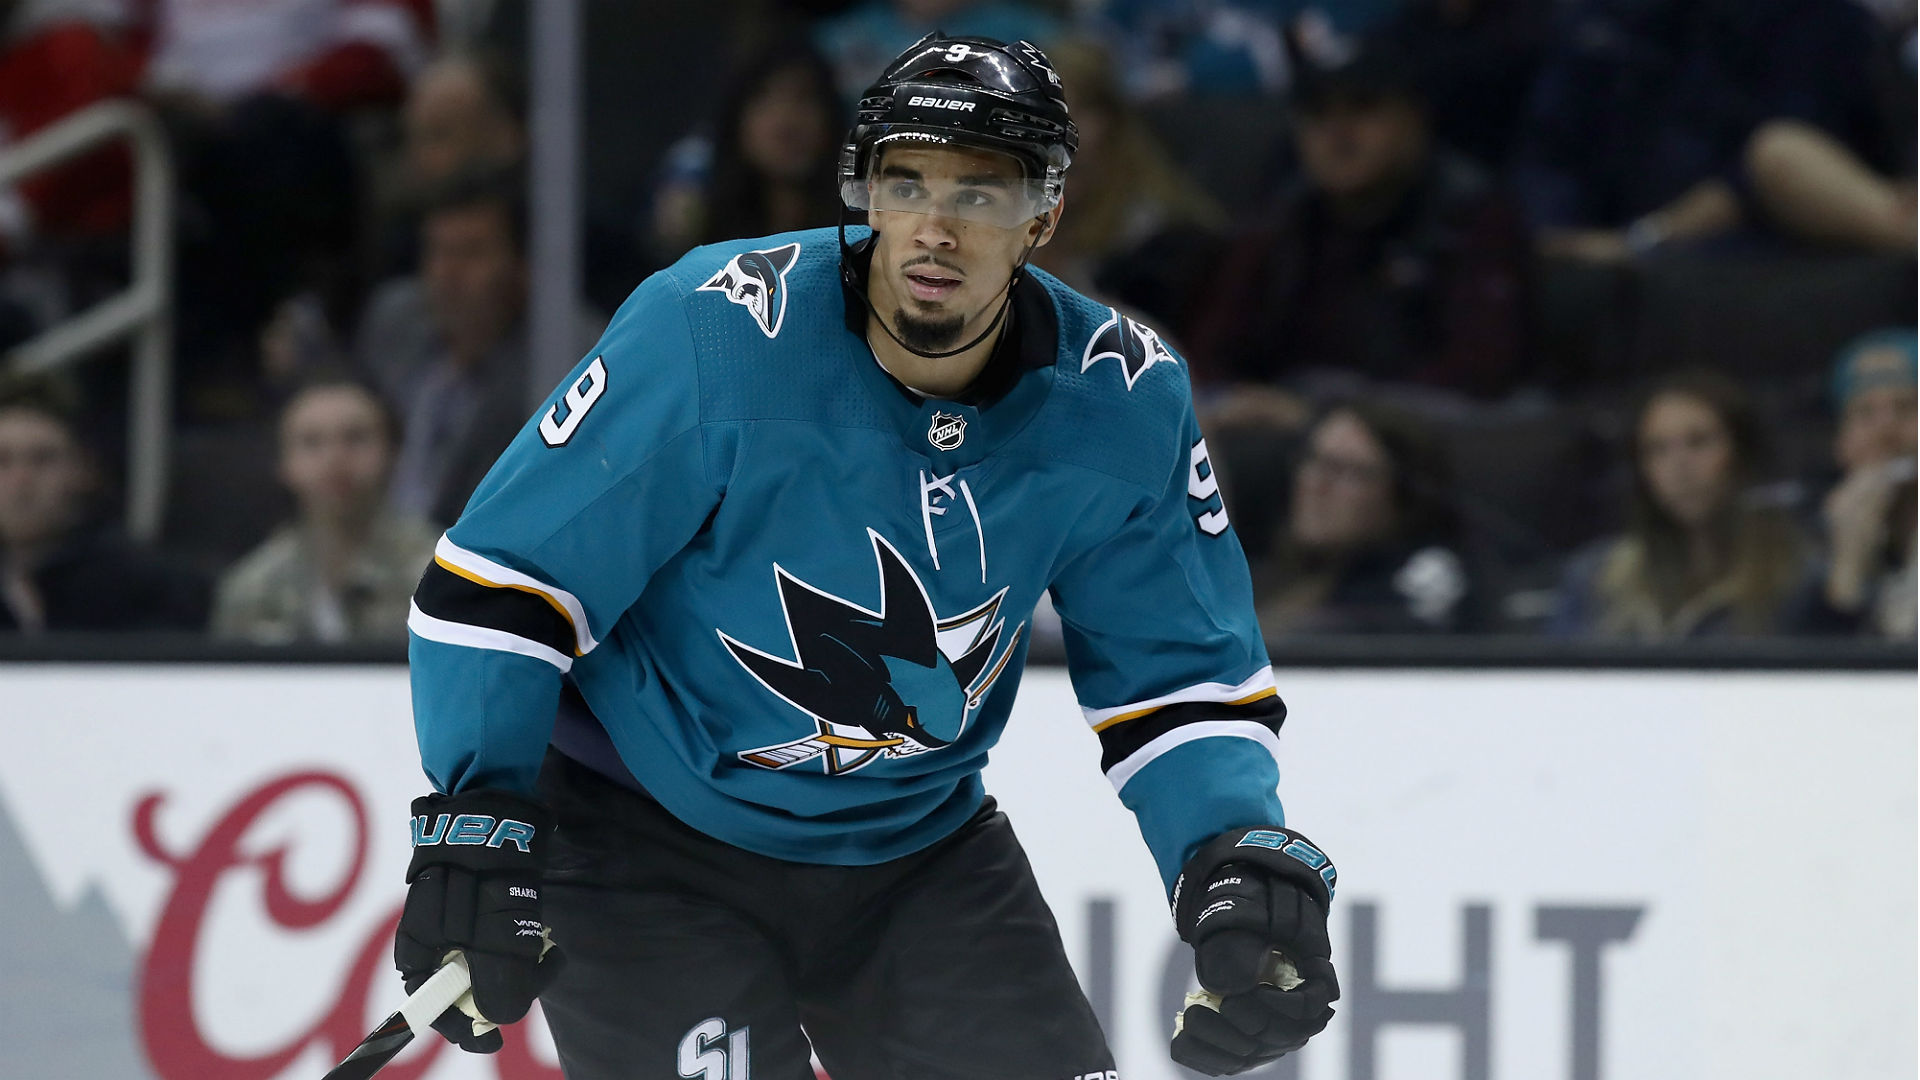 Evander Kane agrees to contract extension with Sharks | NHL | Sporting News